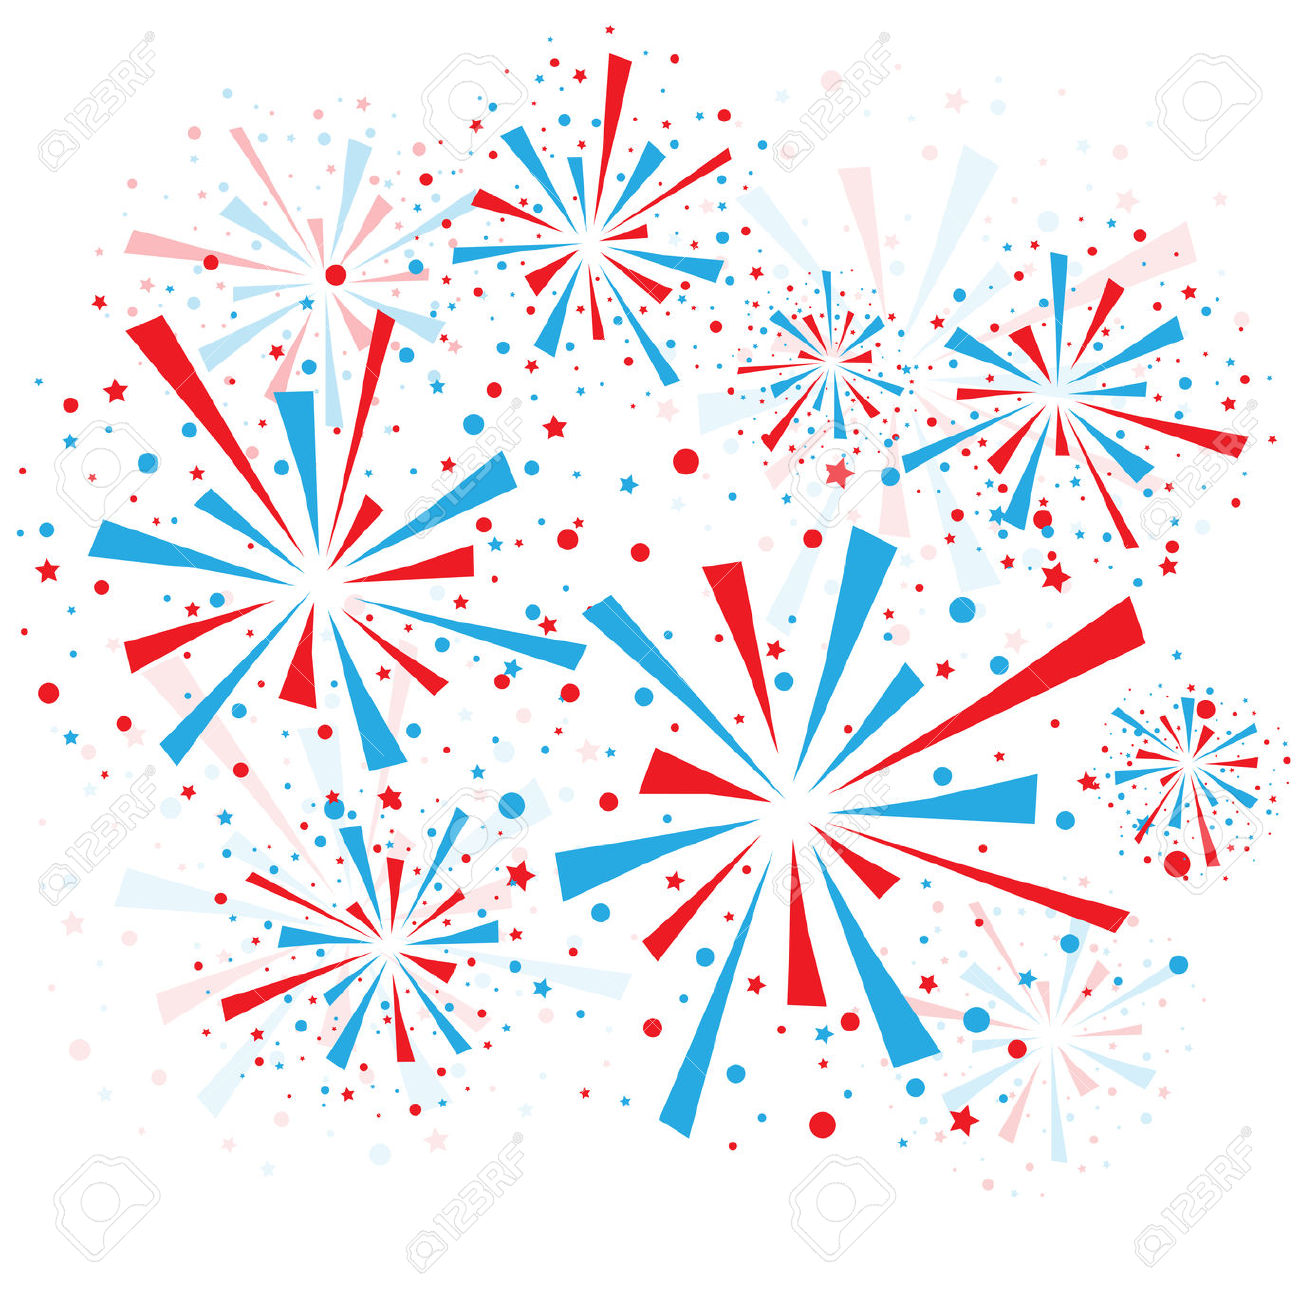 red white and blue firework clipart #19